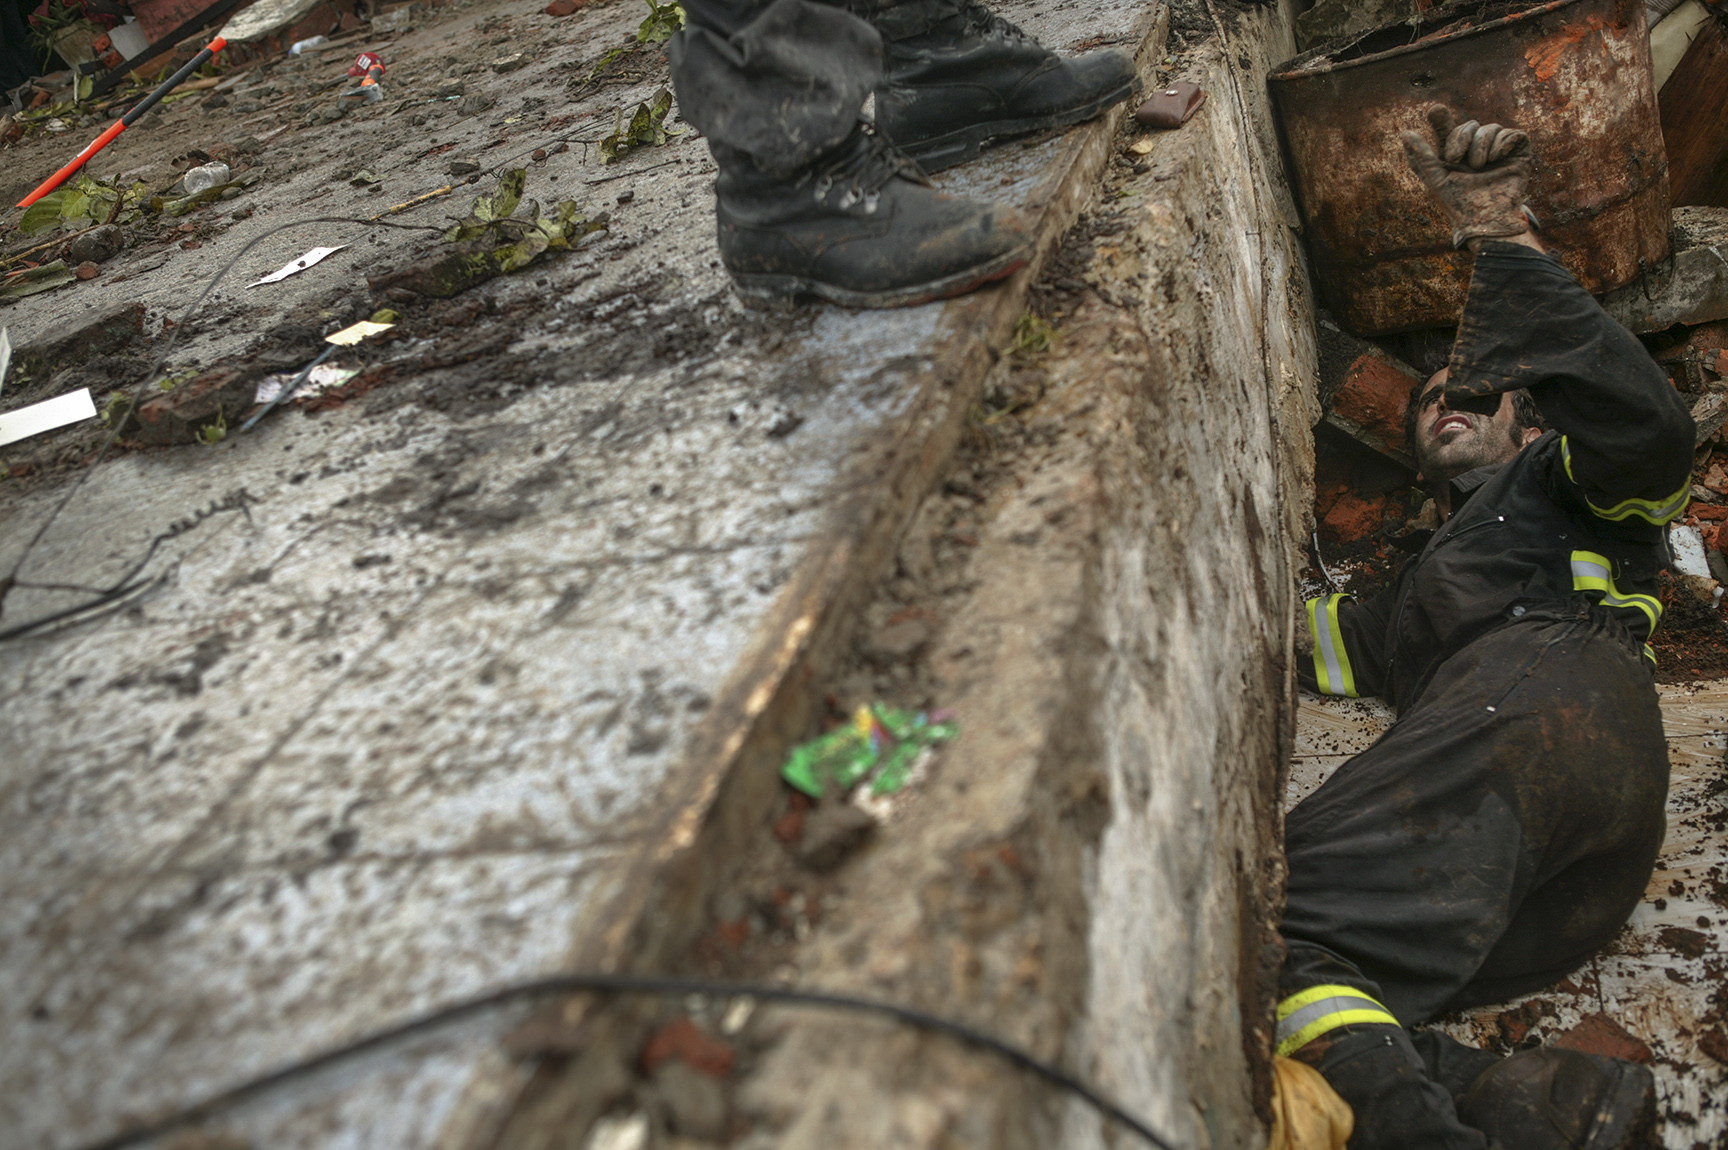 A Spanish search and rescue team searches a collapsed building for survivors.